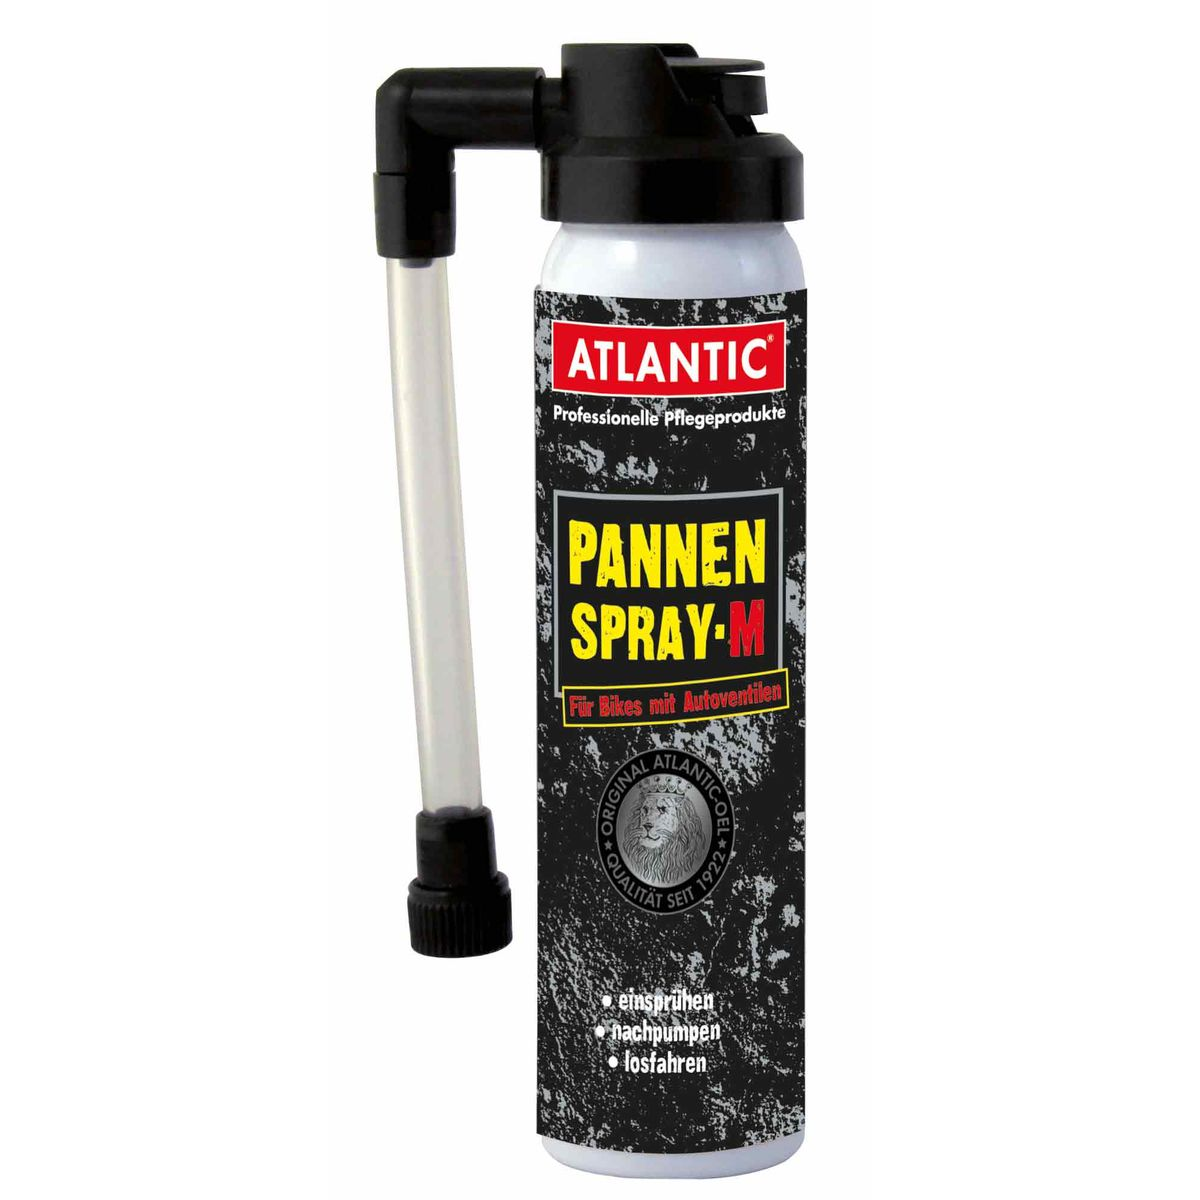 Pannenspray M tyre sealant for Schrader valves